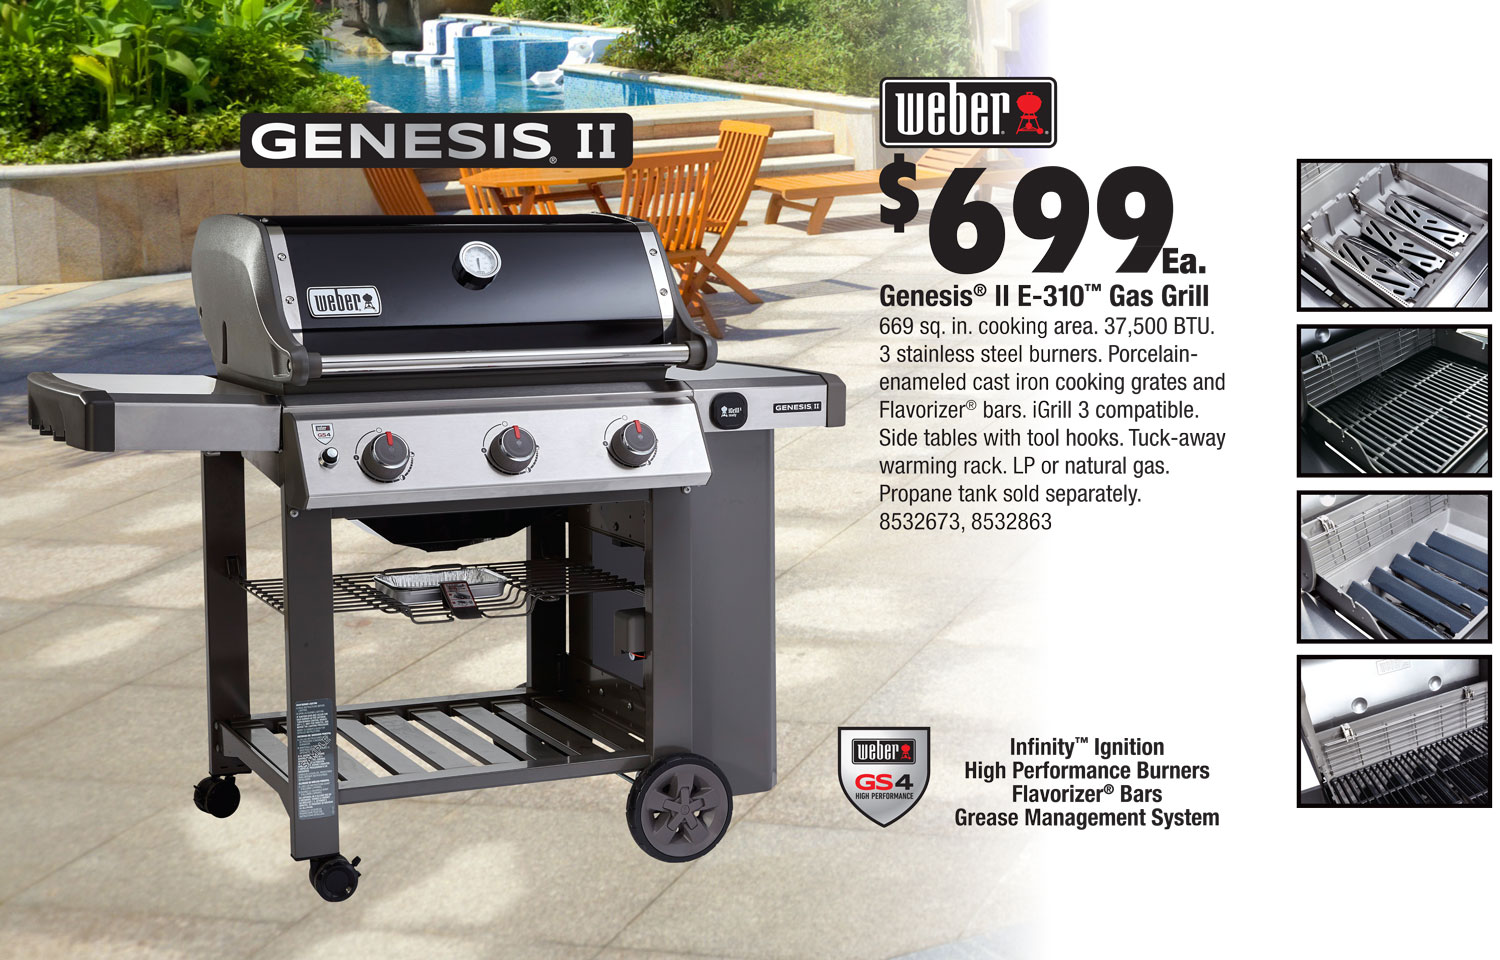 Weber Grills - Vision Ace Stores